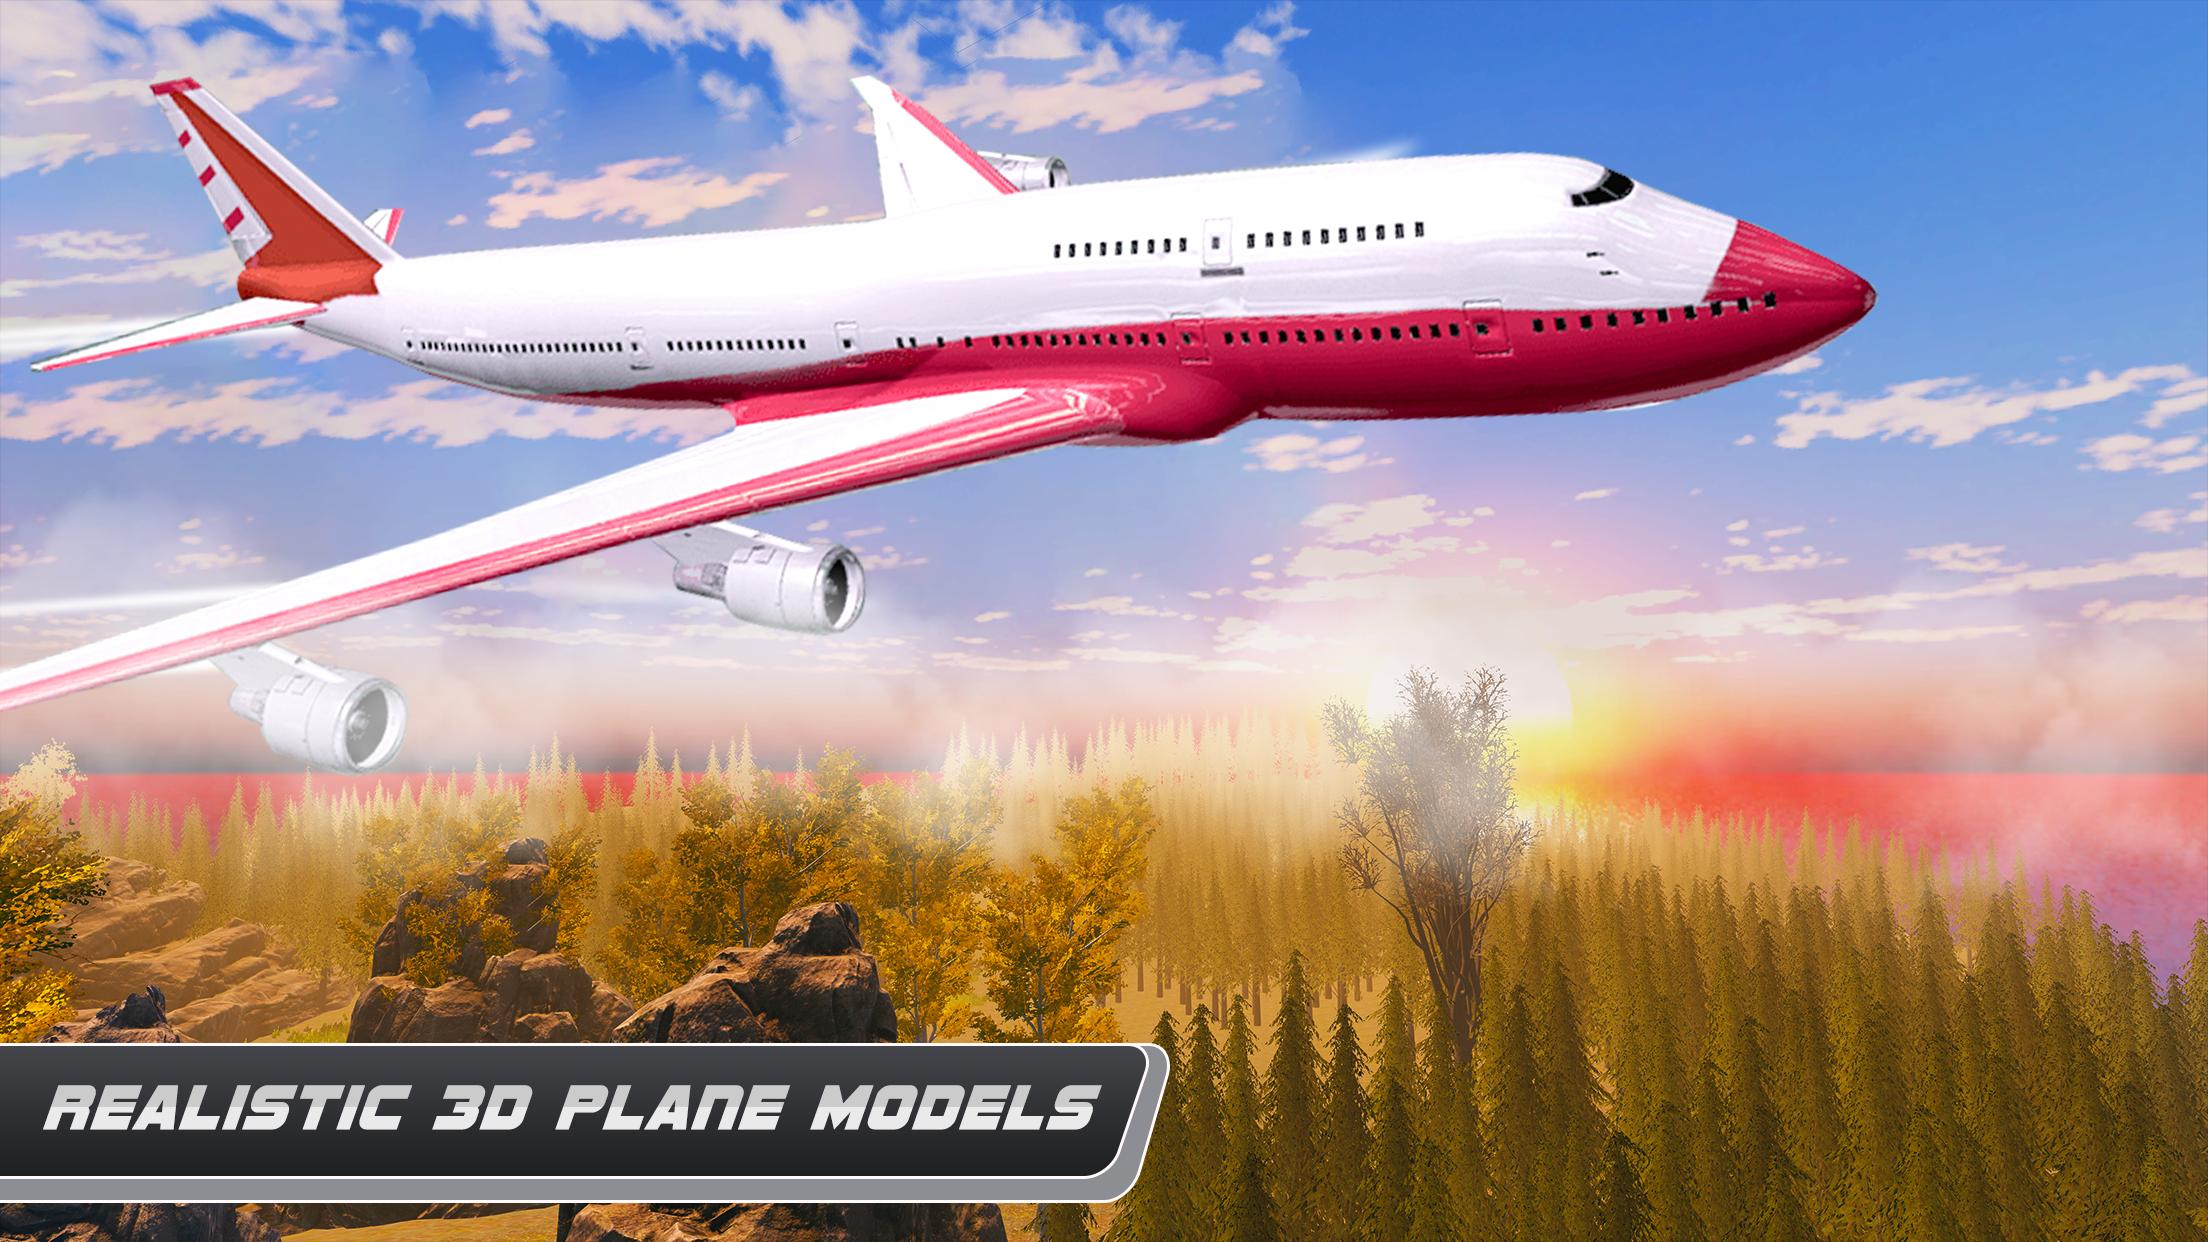 Airplane Real Flight Simulator 2020 Plane Games 5.4 Screenshot 12